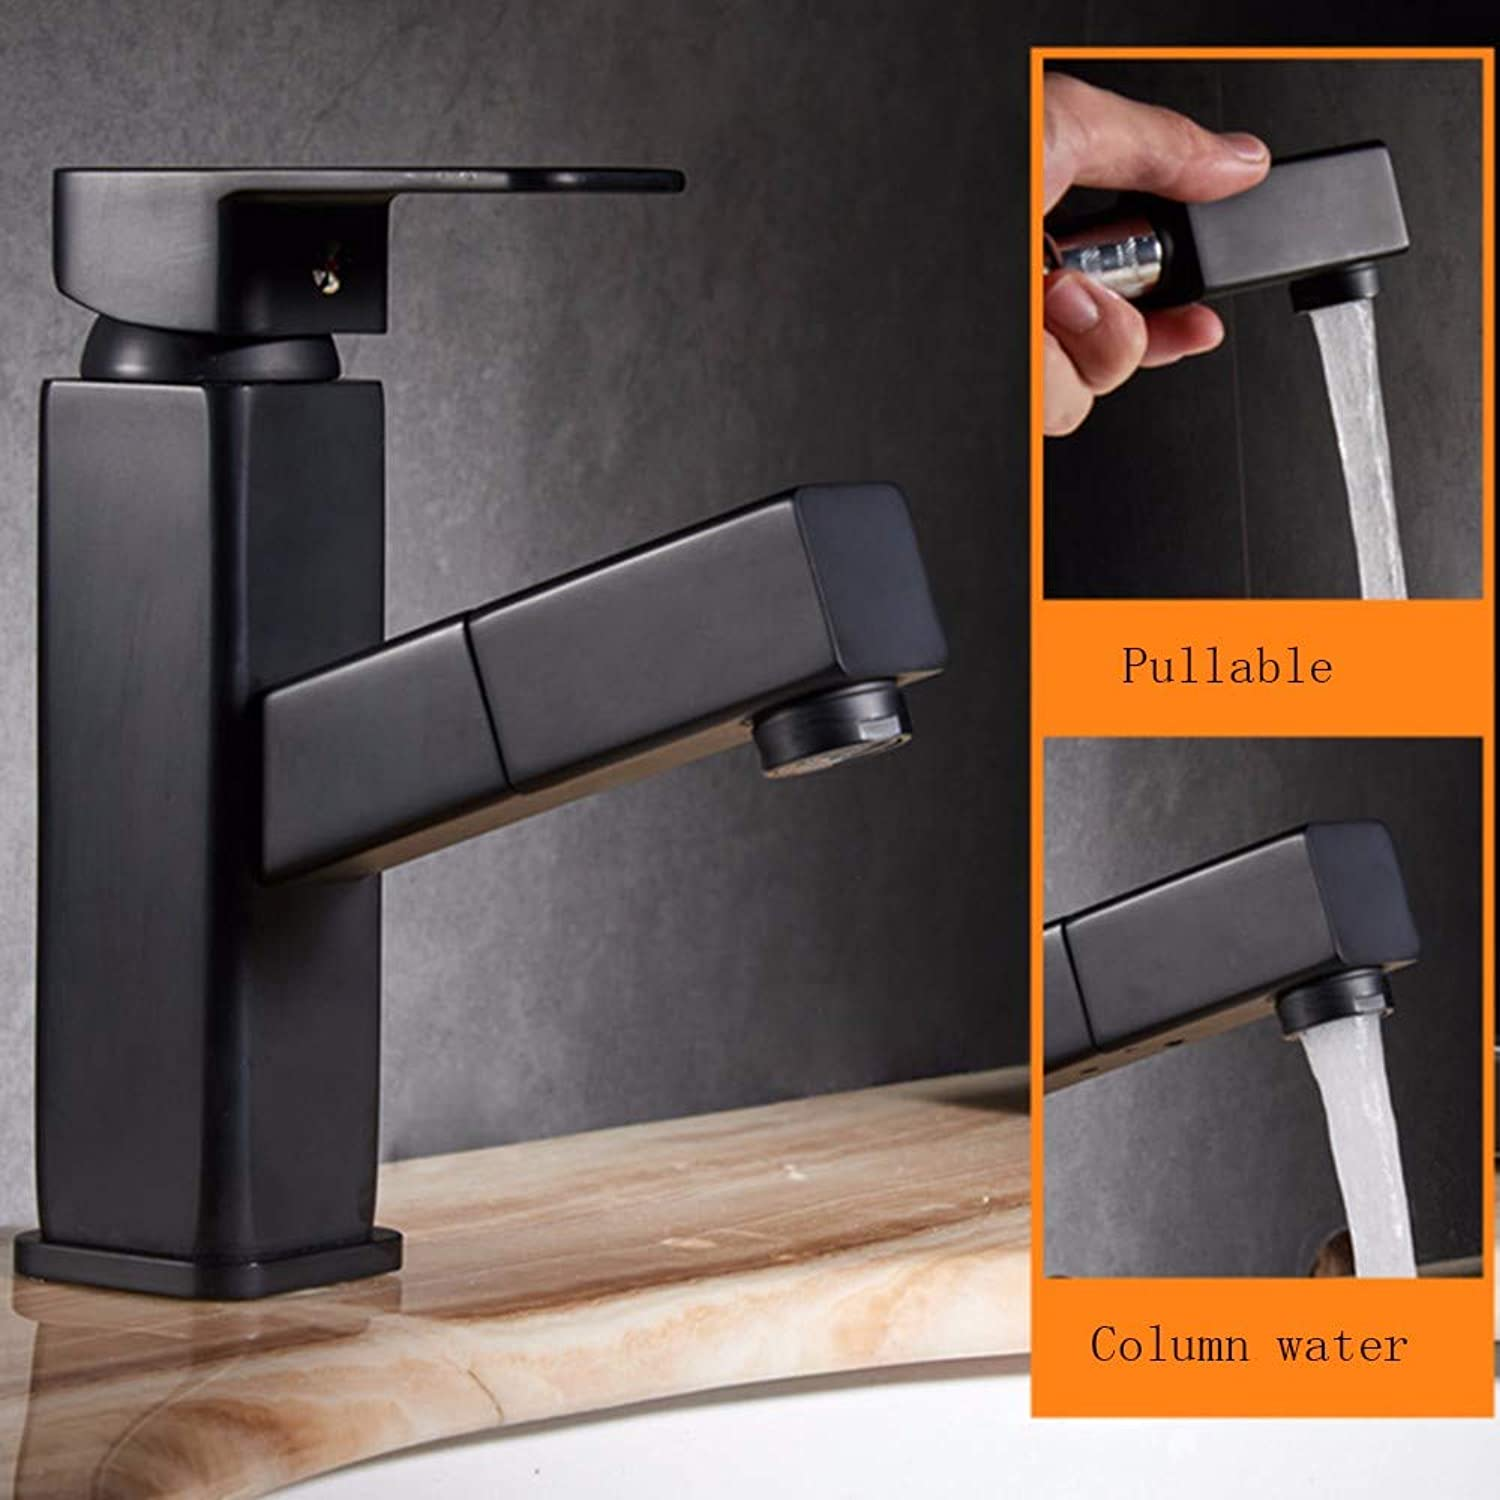 Bathroom taps Black All-Copper Pull-Type Cold and hot Water taps Table Basin Sink Basin Basin taps,A